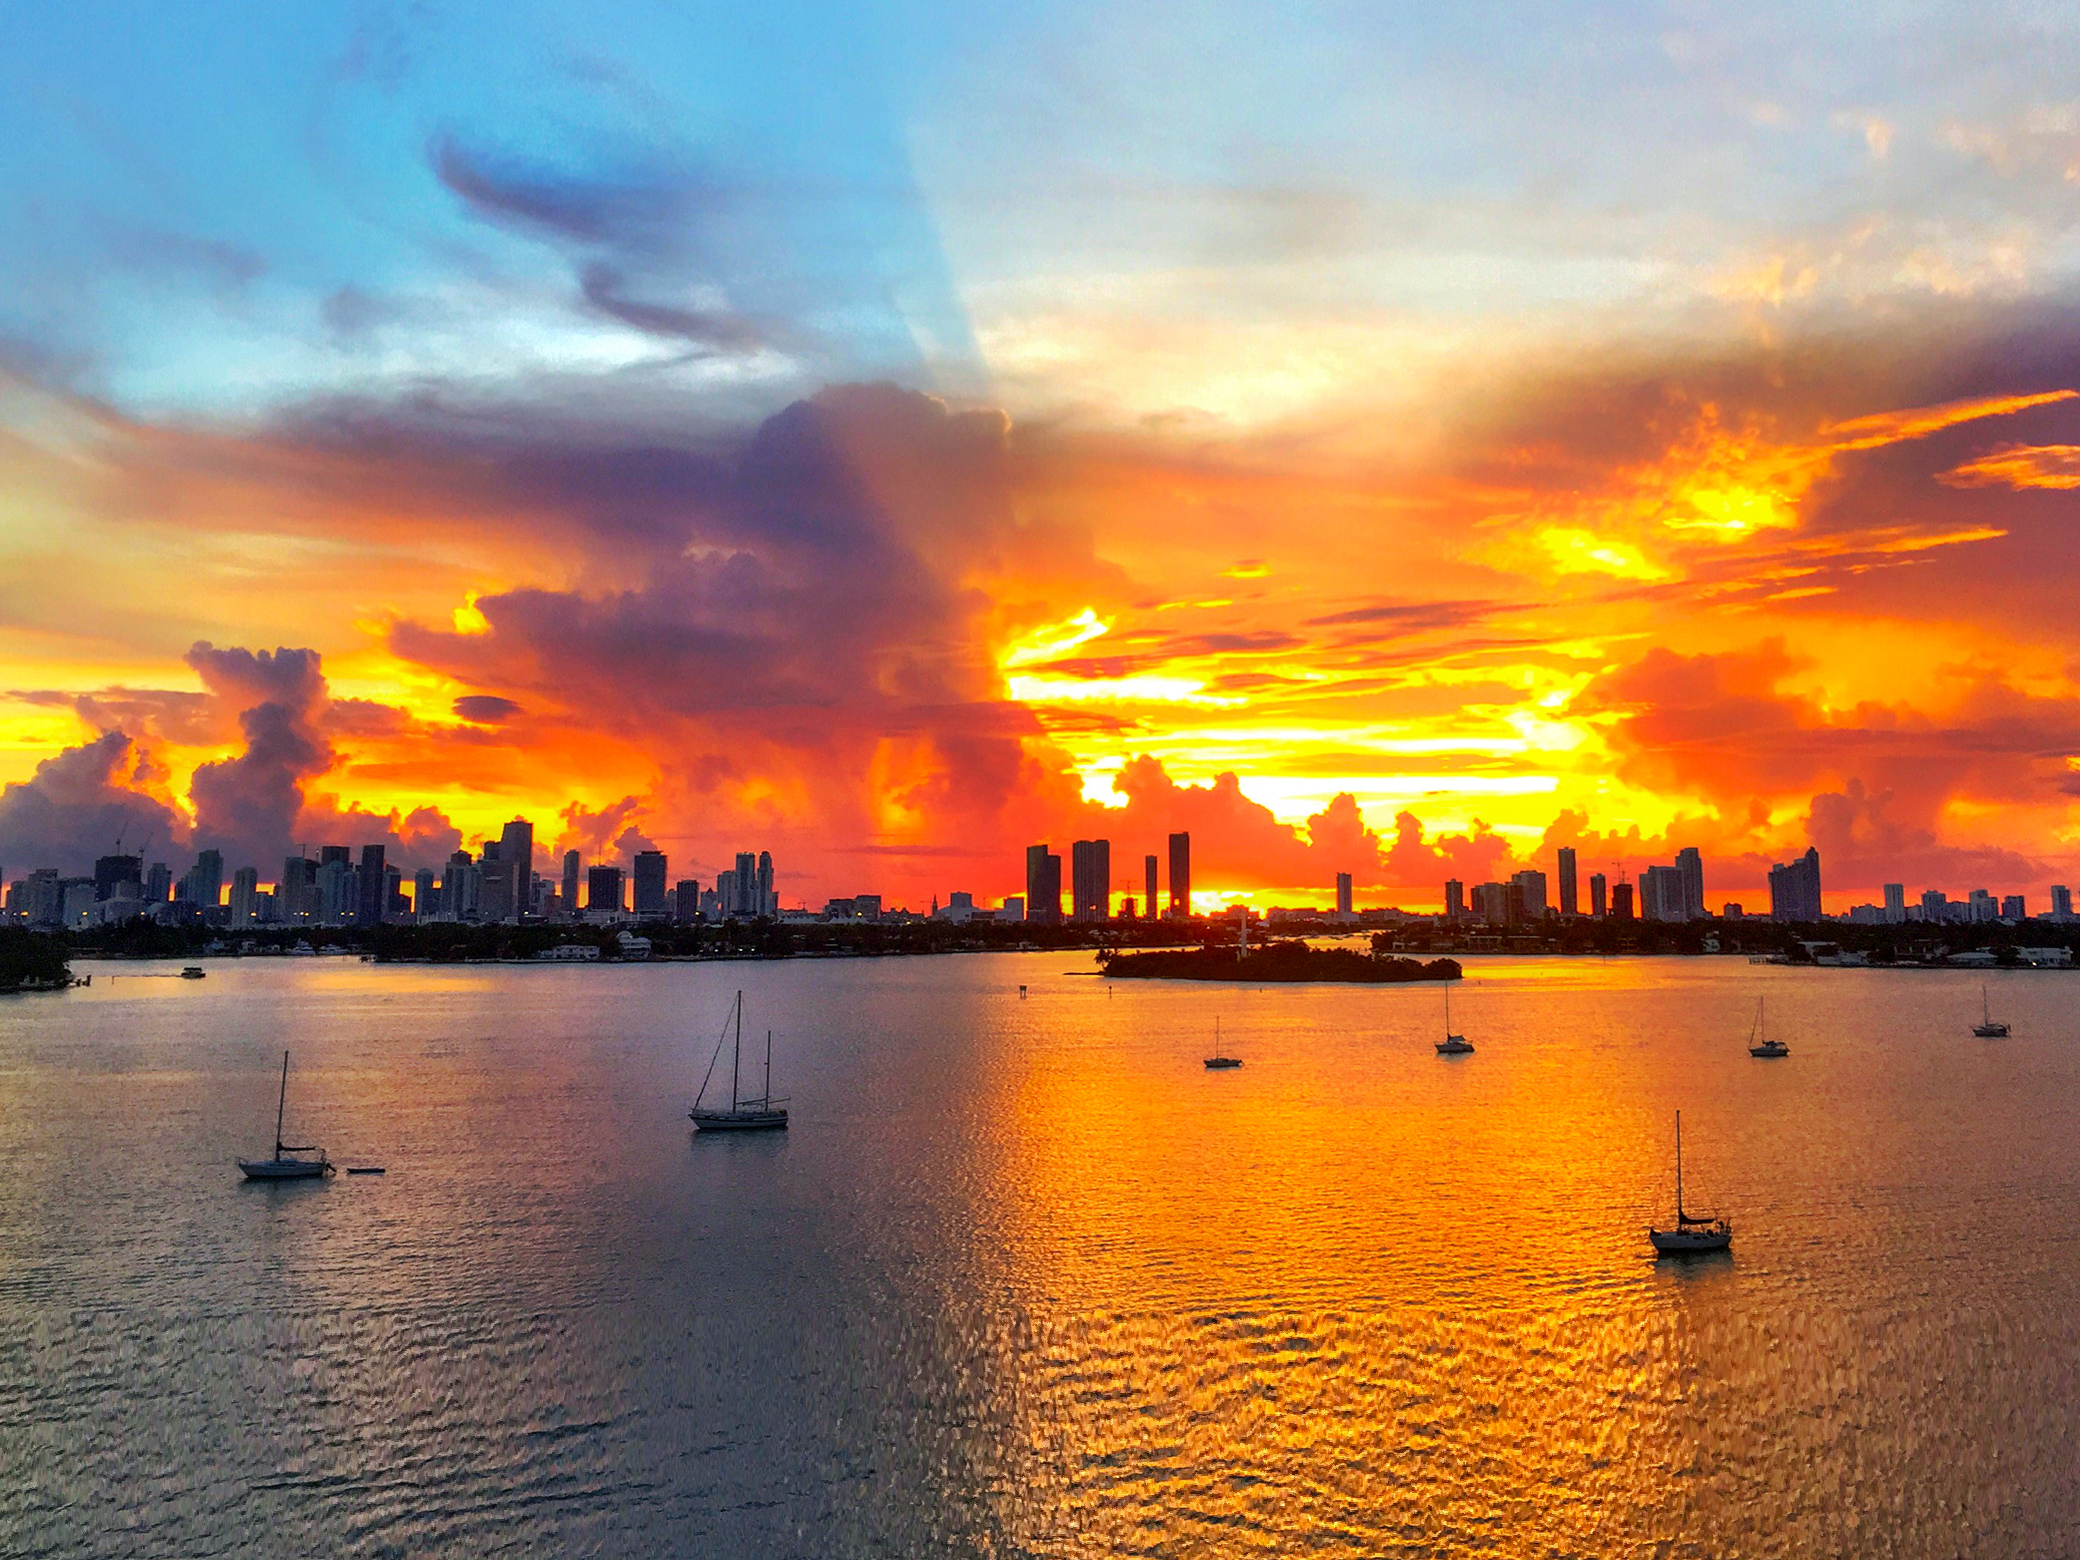 The sunset view from 1330 West Avenue, Unit #801 in Miami Beach